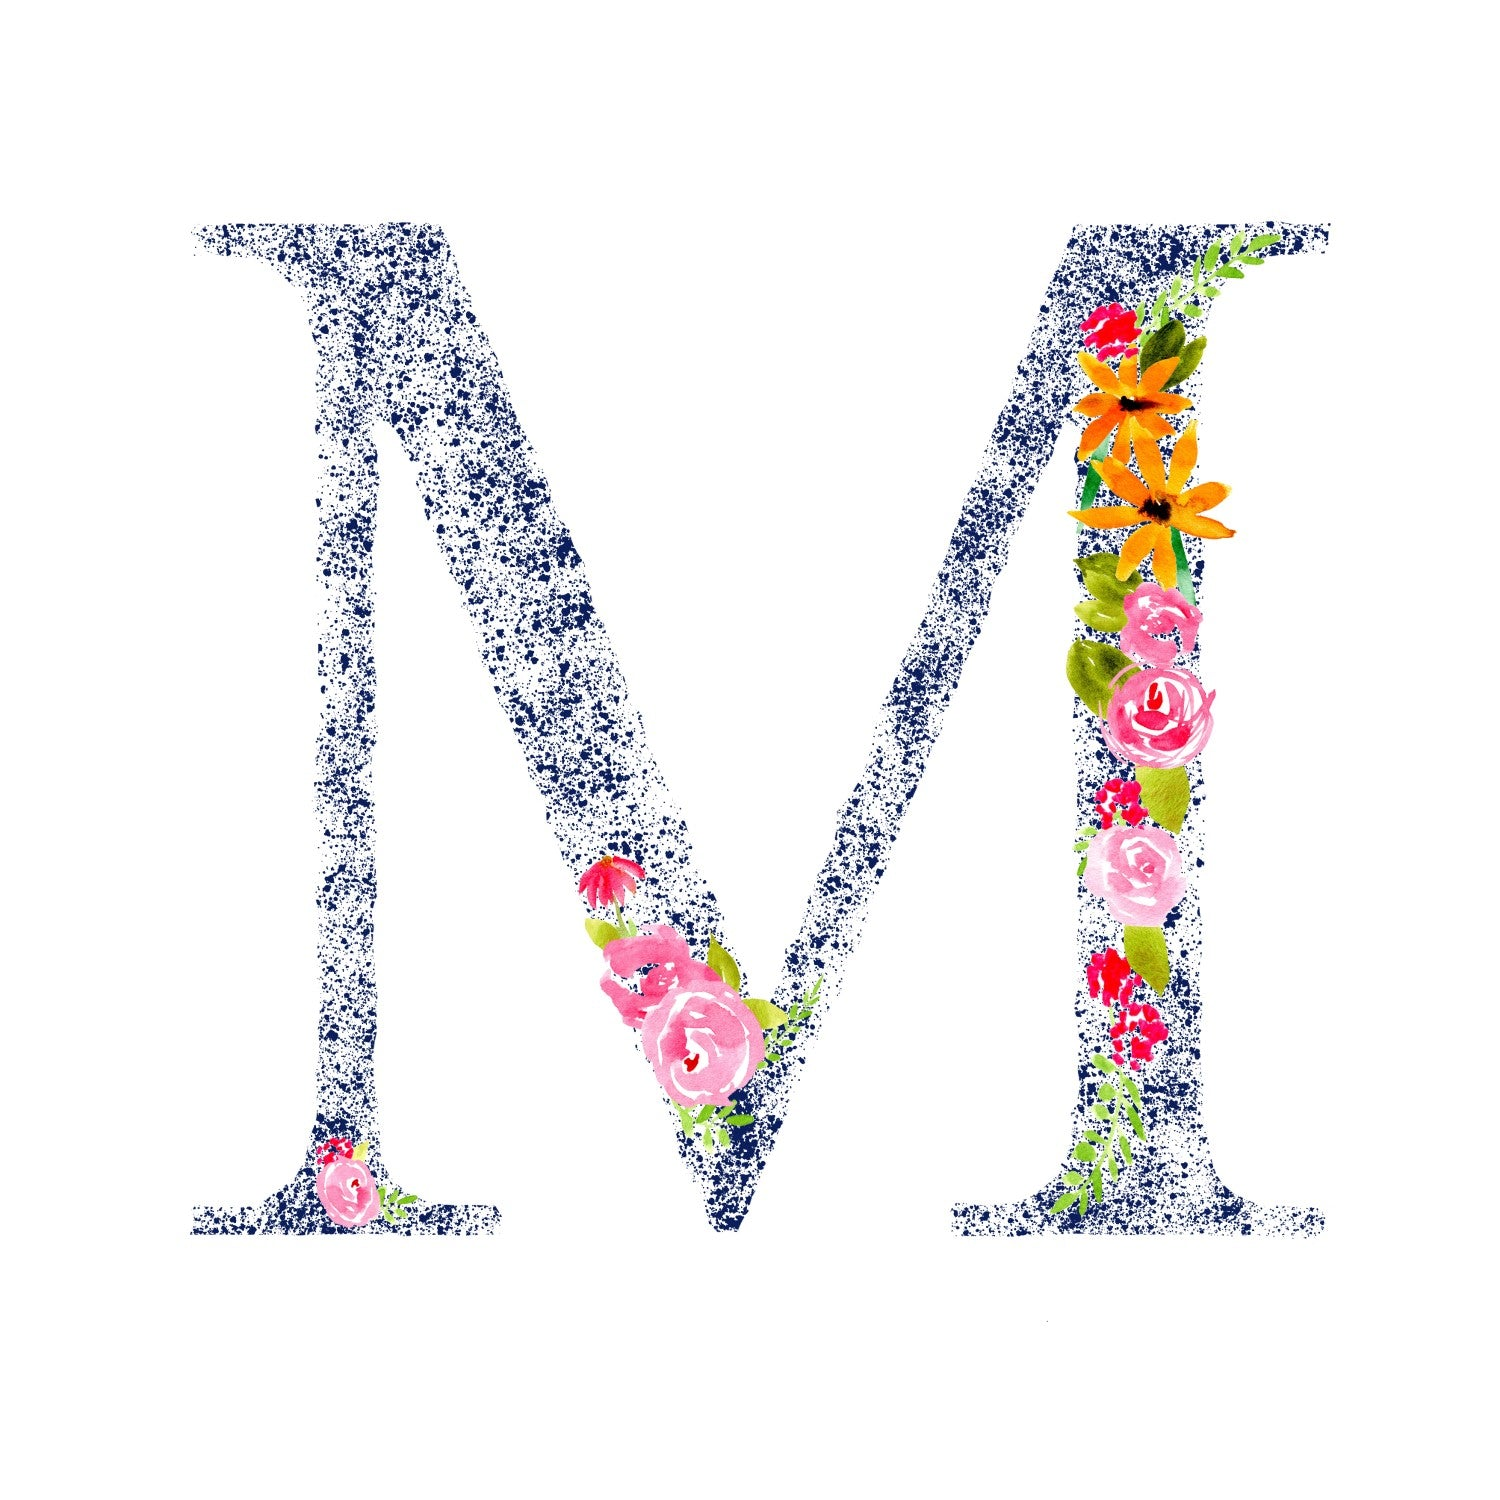 Whose name begins with the letter M